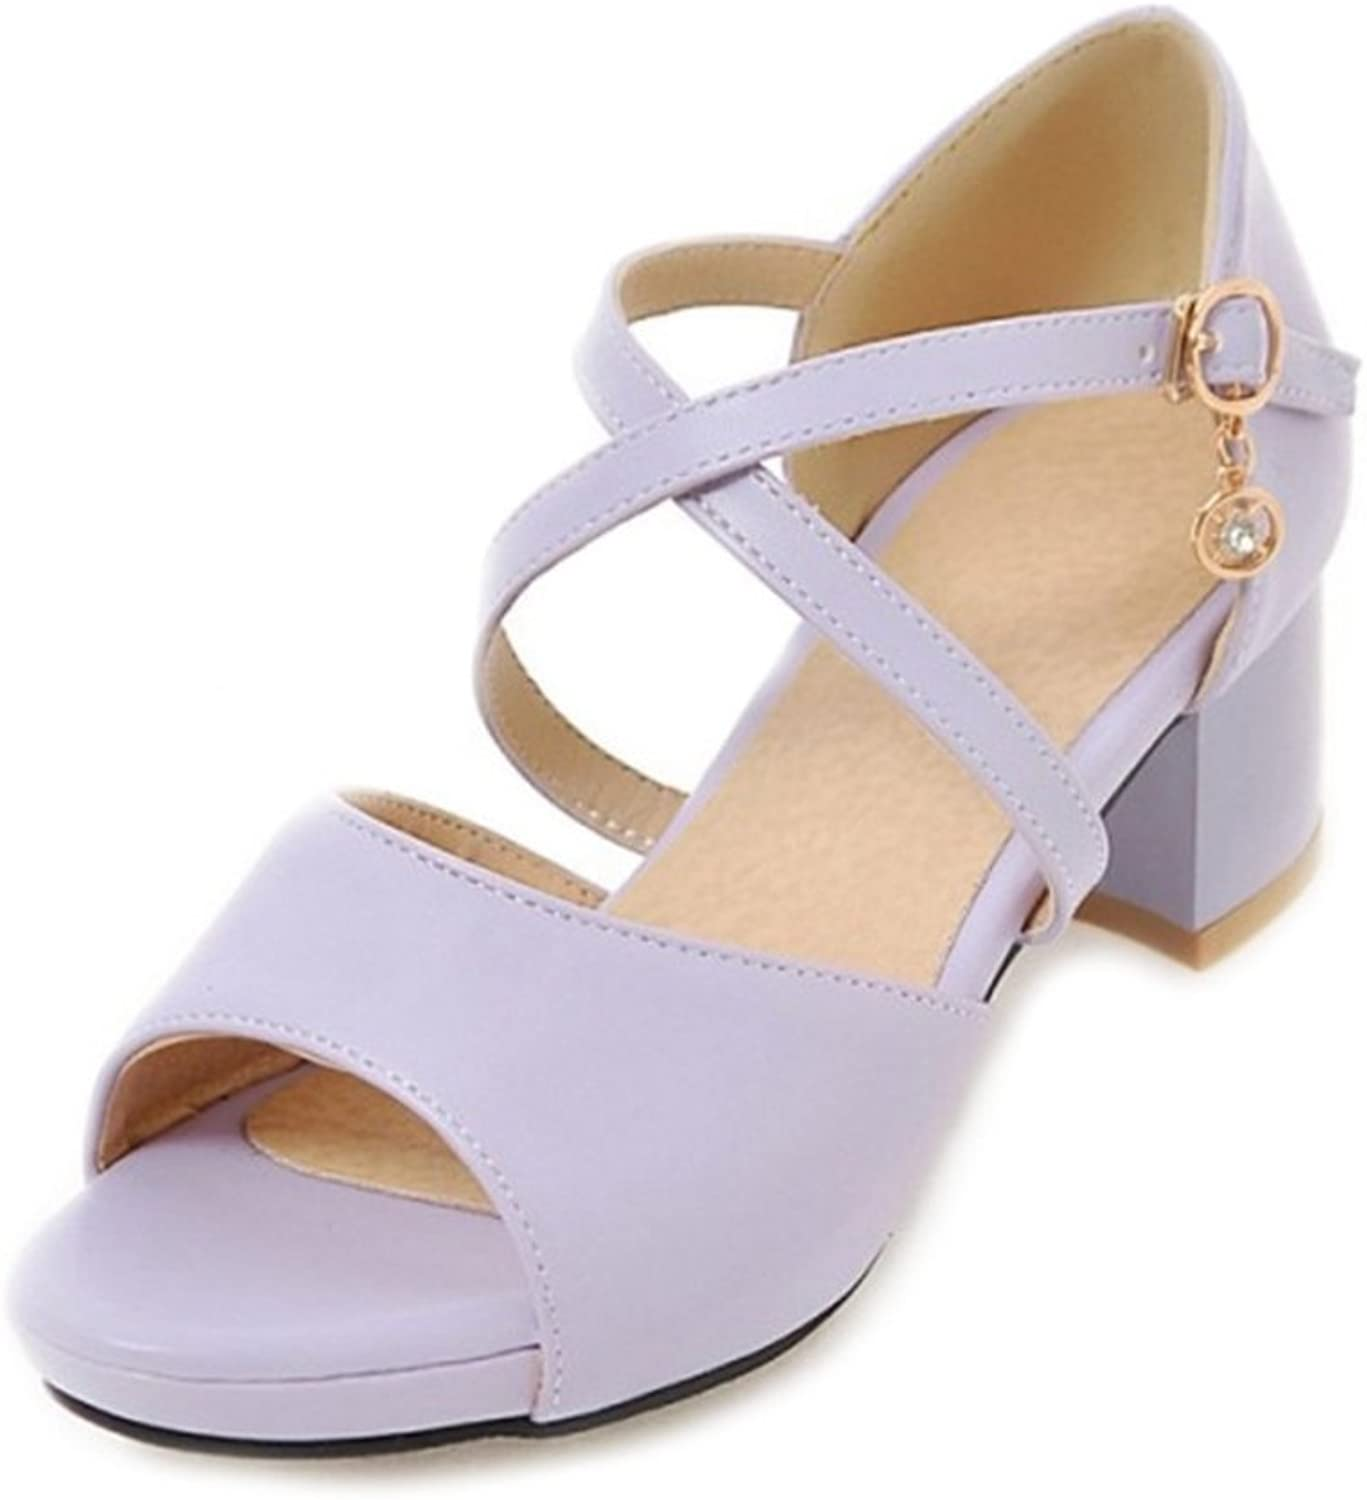 CuteFlats Women Sandals with Chunky Heel and Cross Straps with Large